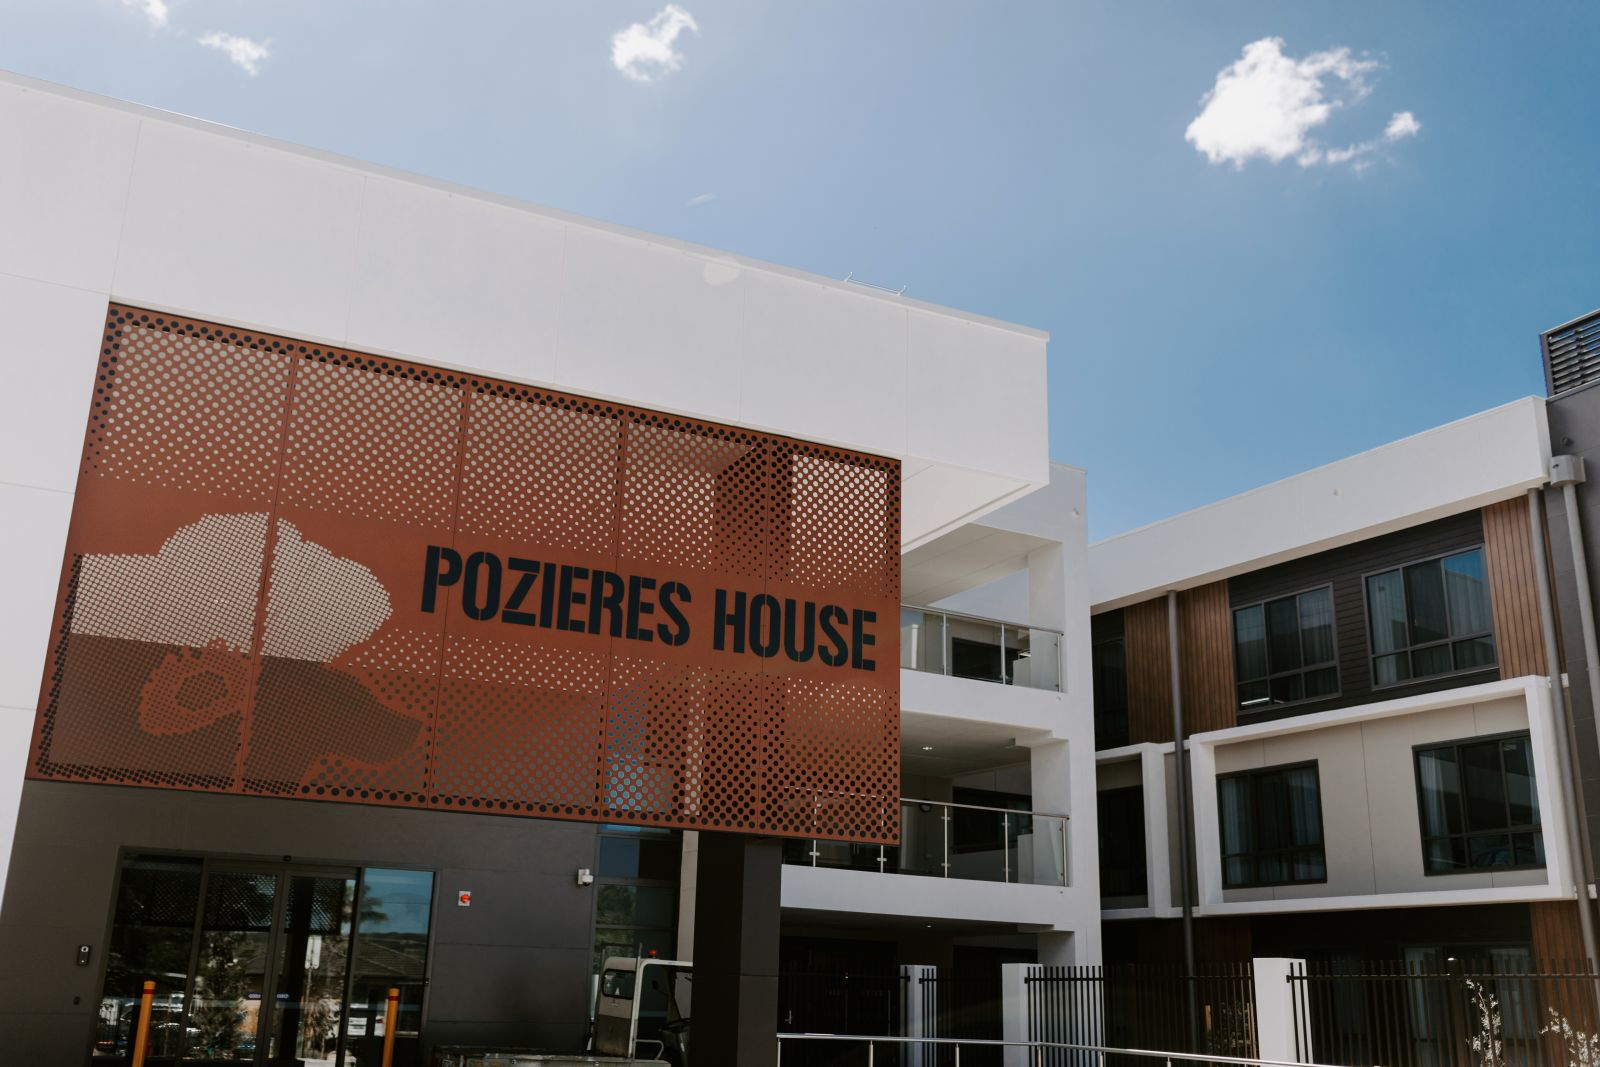 Poziers house